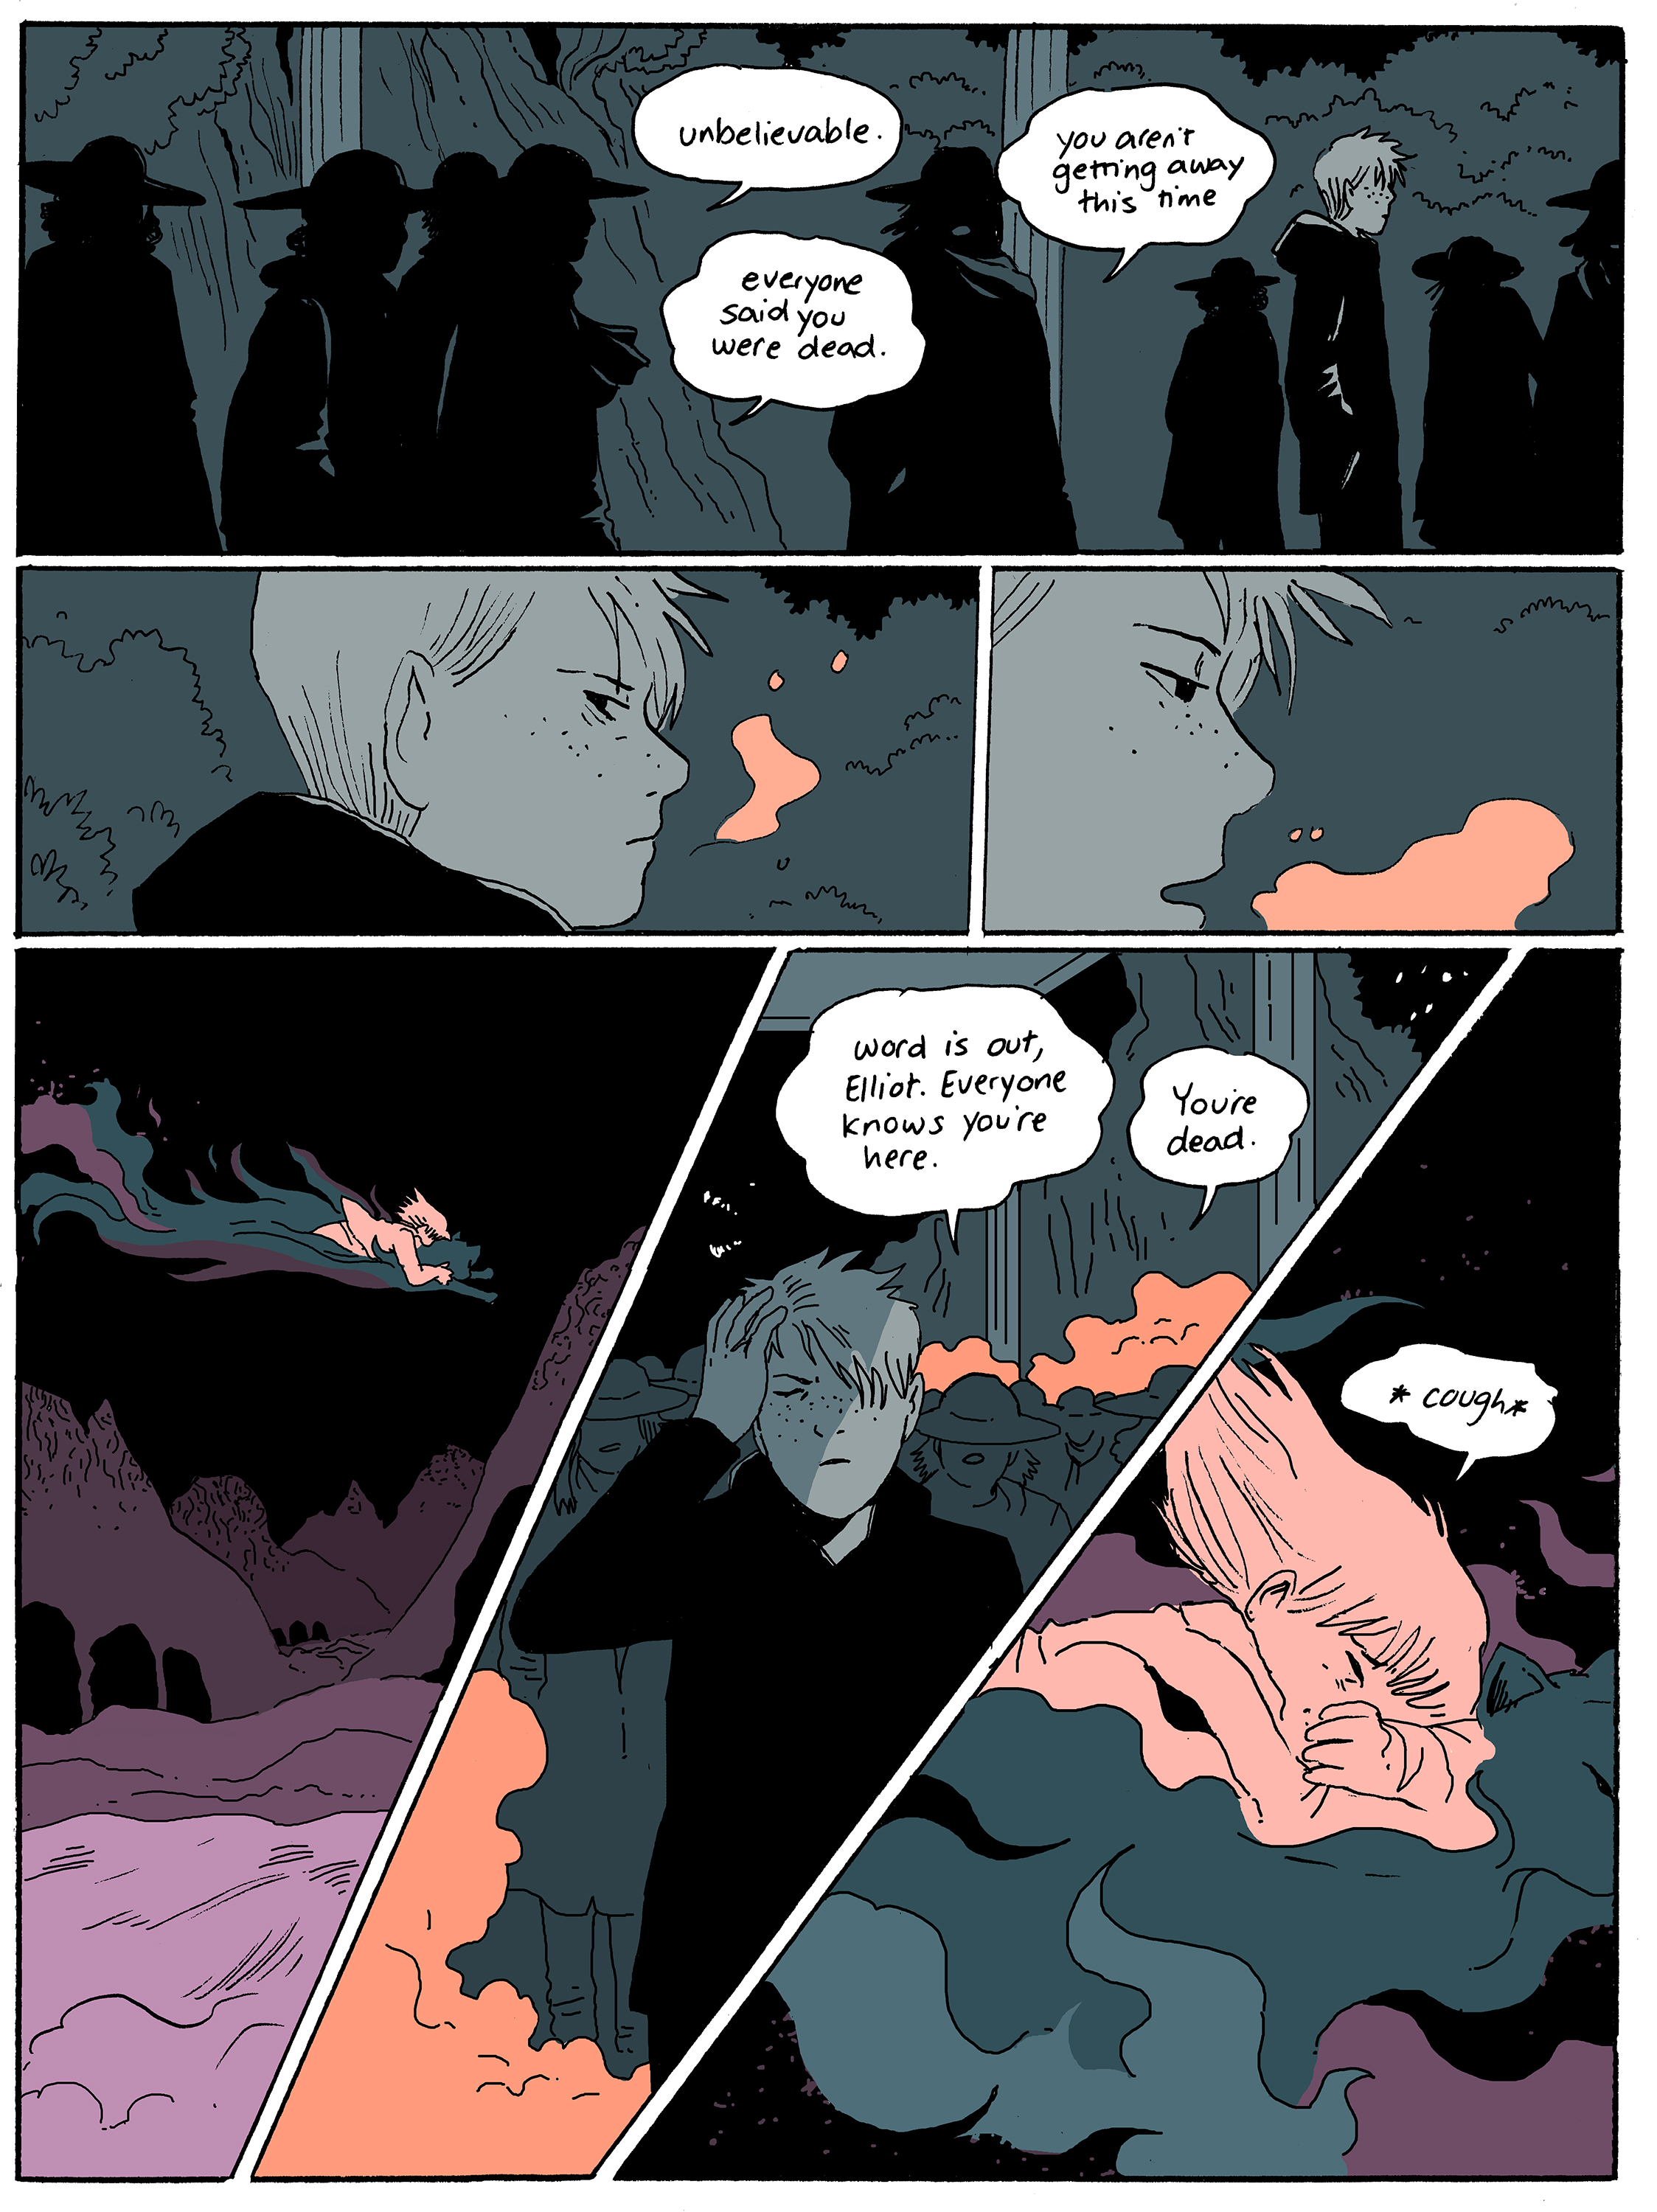 chapter17_page27.jpg